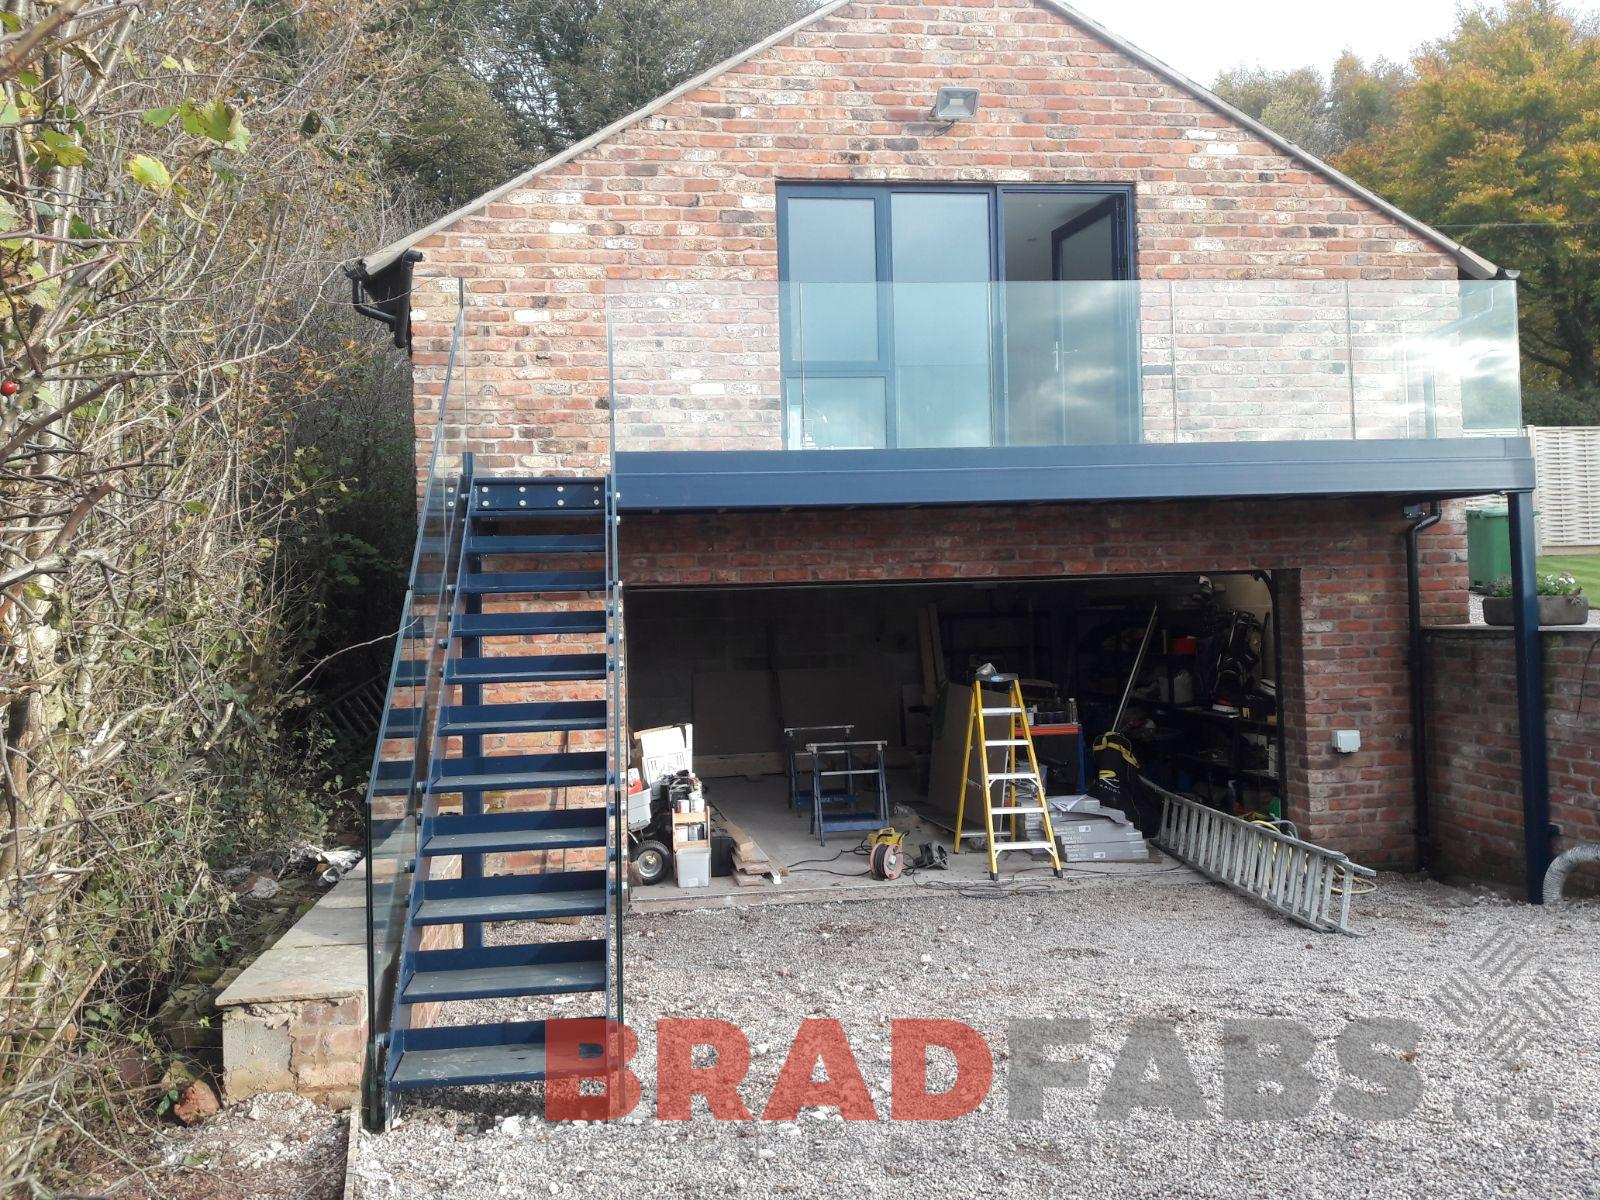 Garden access balcony and staircase manufactured by Bradfabs